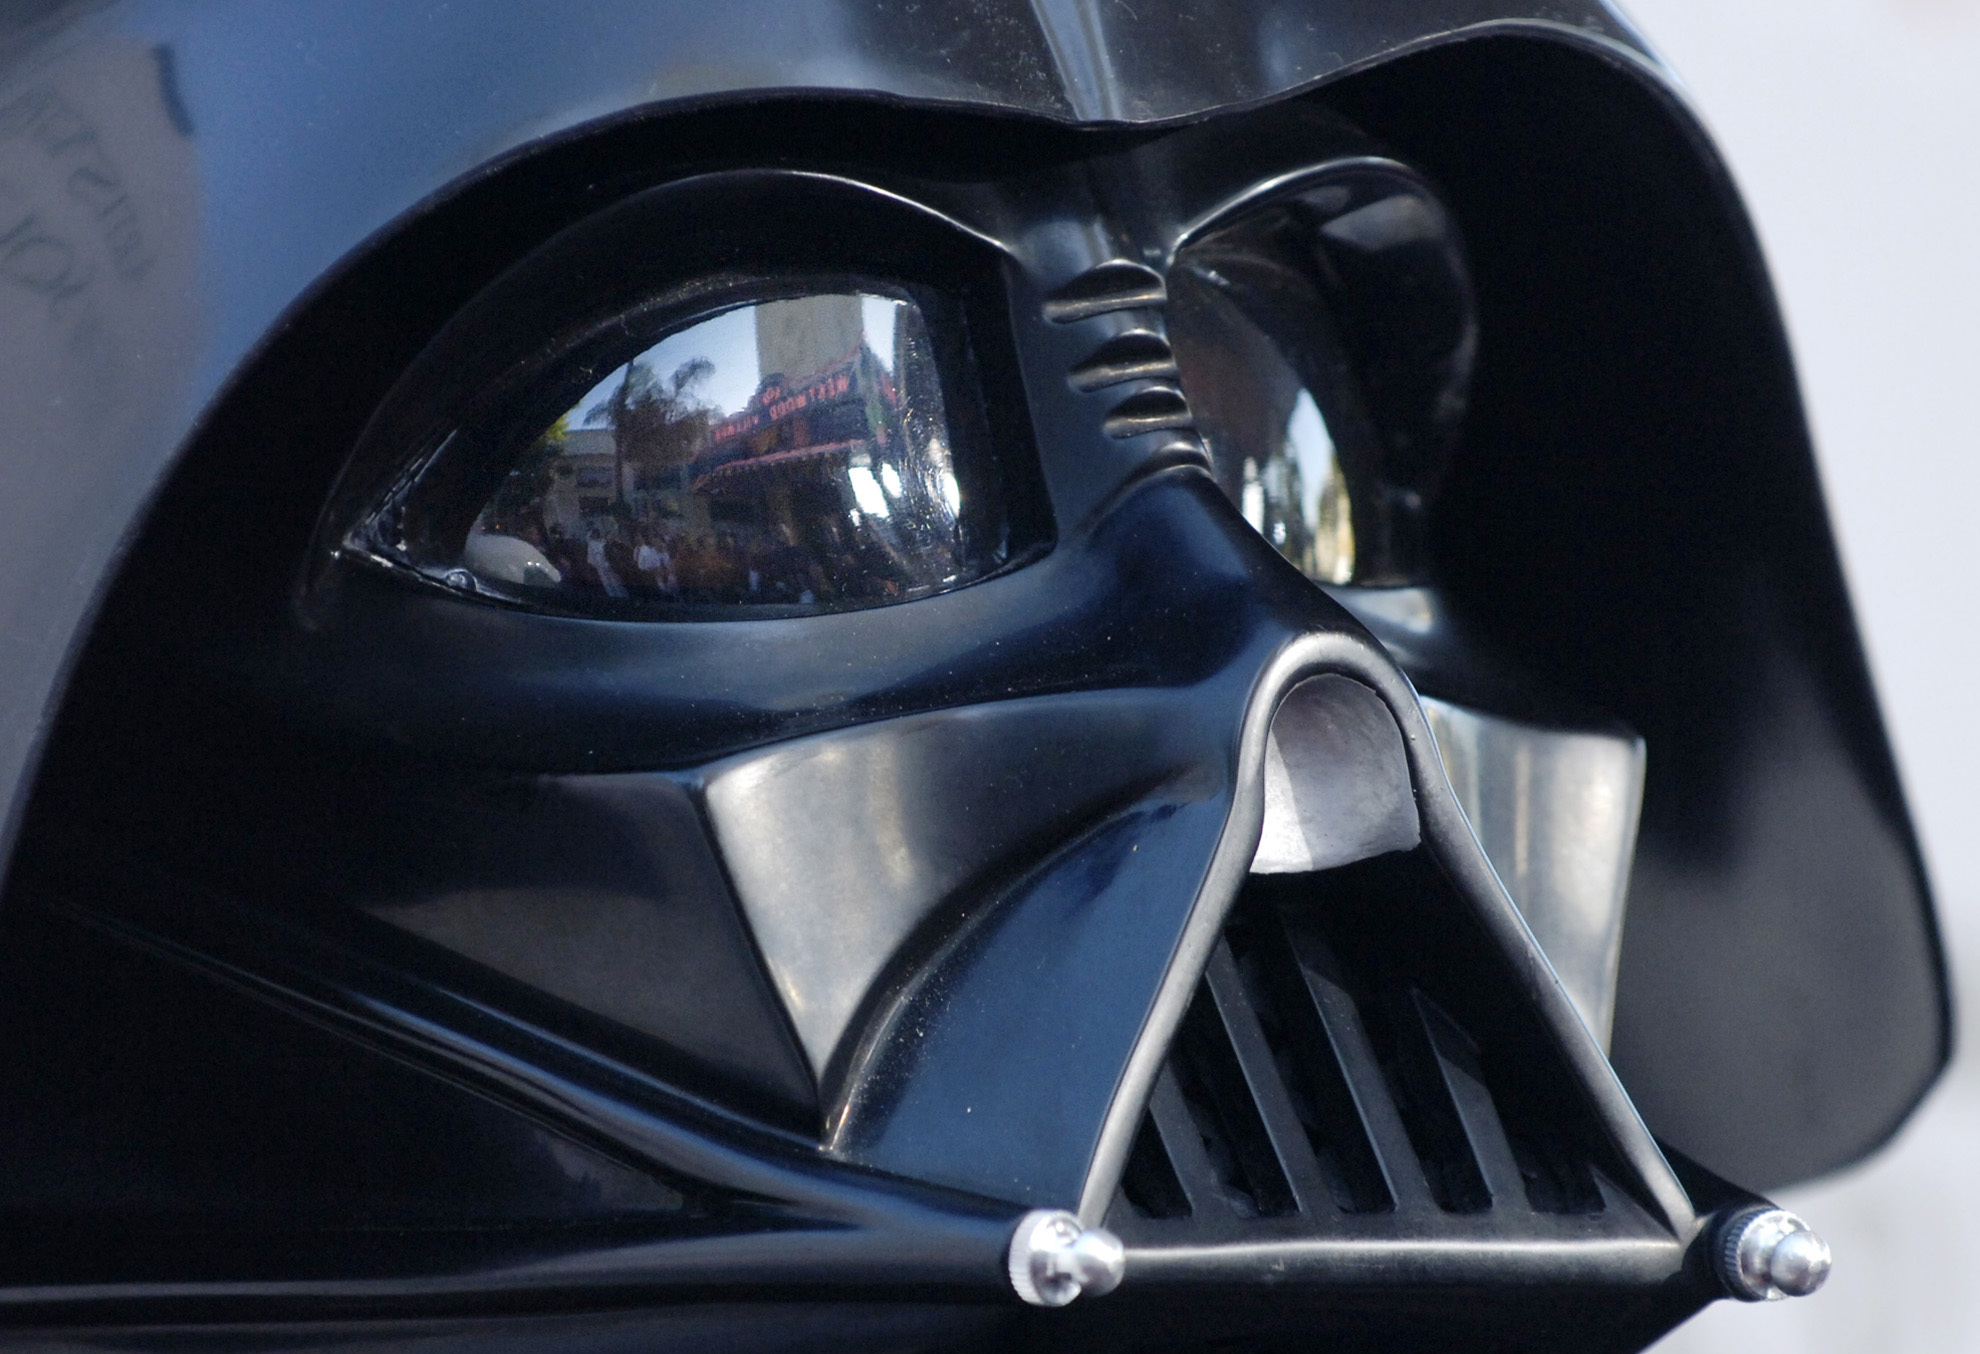 "In this file photo dated Thursday, May 12, 2005, the Los Angeles, USA, premiere of the movie ""Star Wars: Revenge of the Sith"", is reflected in the mask eyeglasses of iconic baddie character Darth Vader. The British actor, Prowse who played Darth Vader in the original Star Wars trilogy, has died aged 85 on Saturday, according to an announcement by his agent Sunday Nov. 29, 2020."